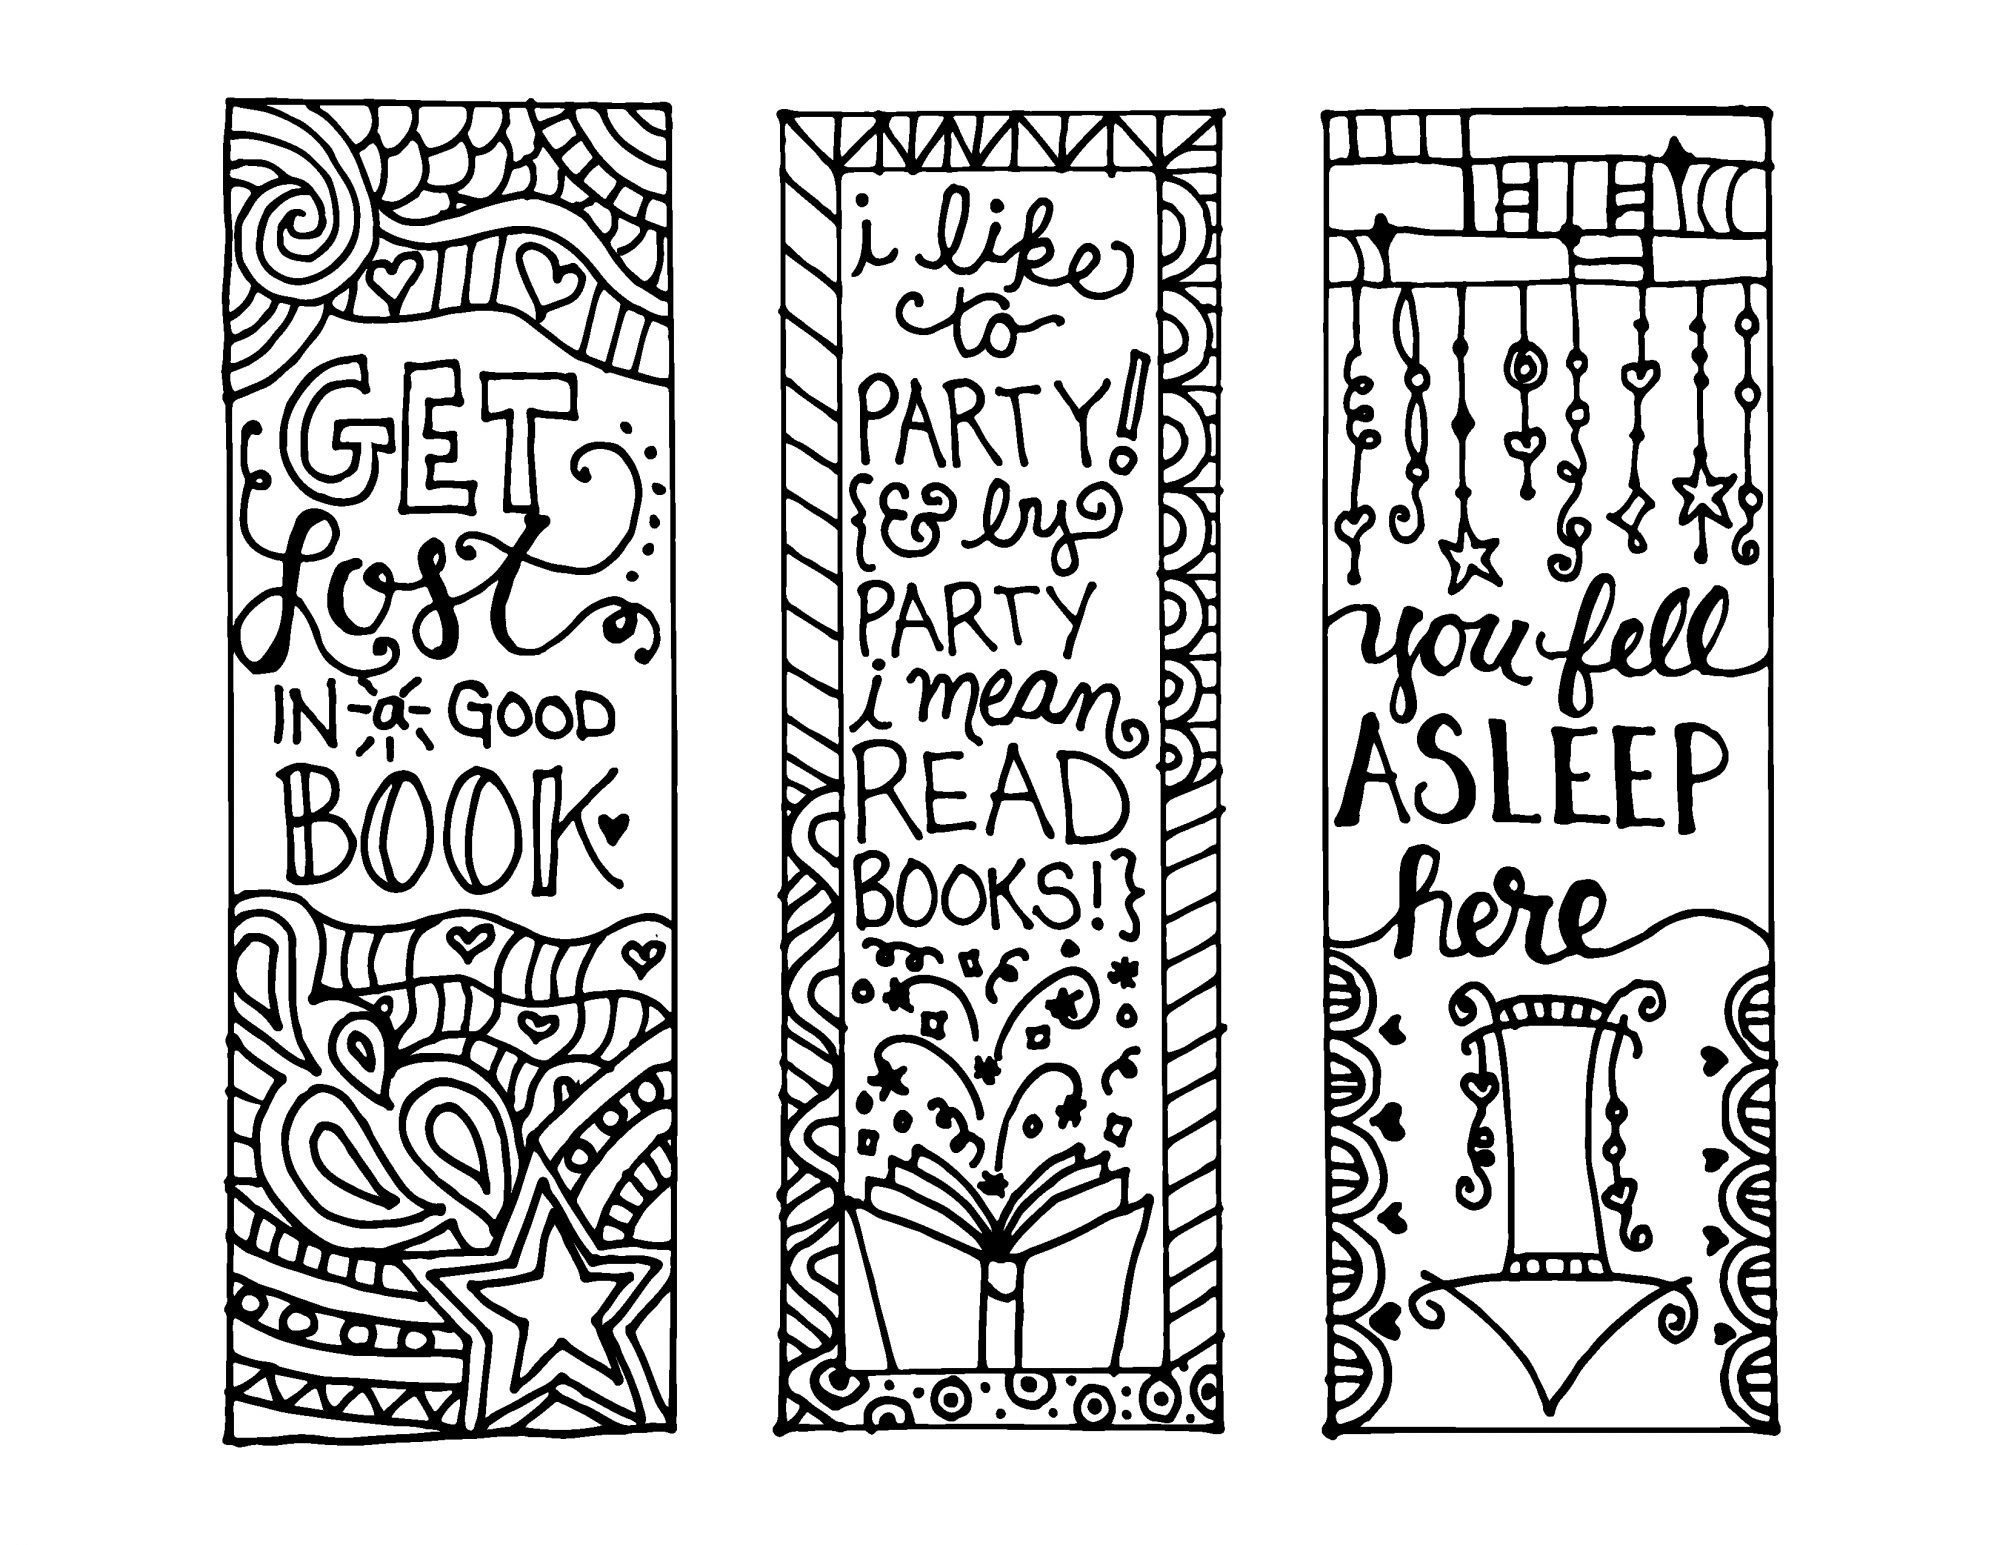 image relating to Free Printable Bookmarks referred to as Free of charge Printable Studying Bookmarks Black and White Sport